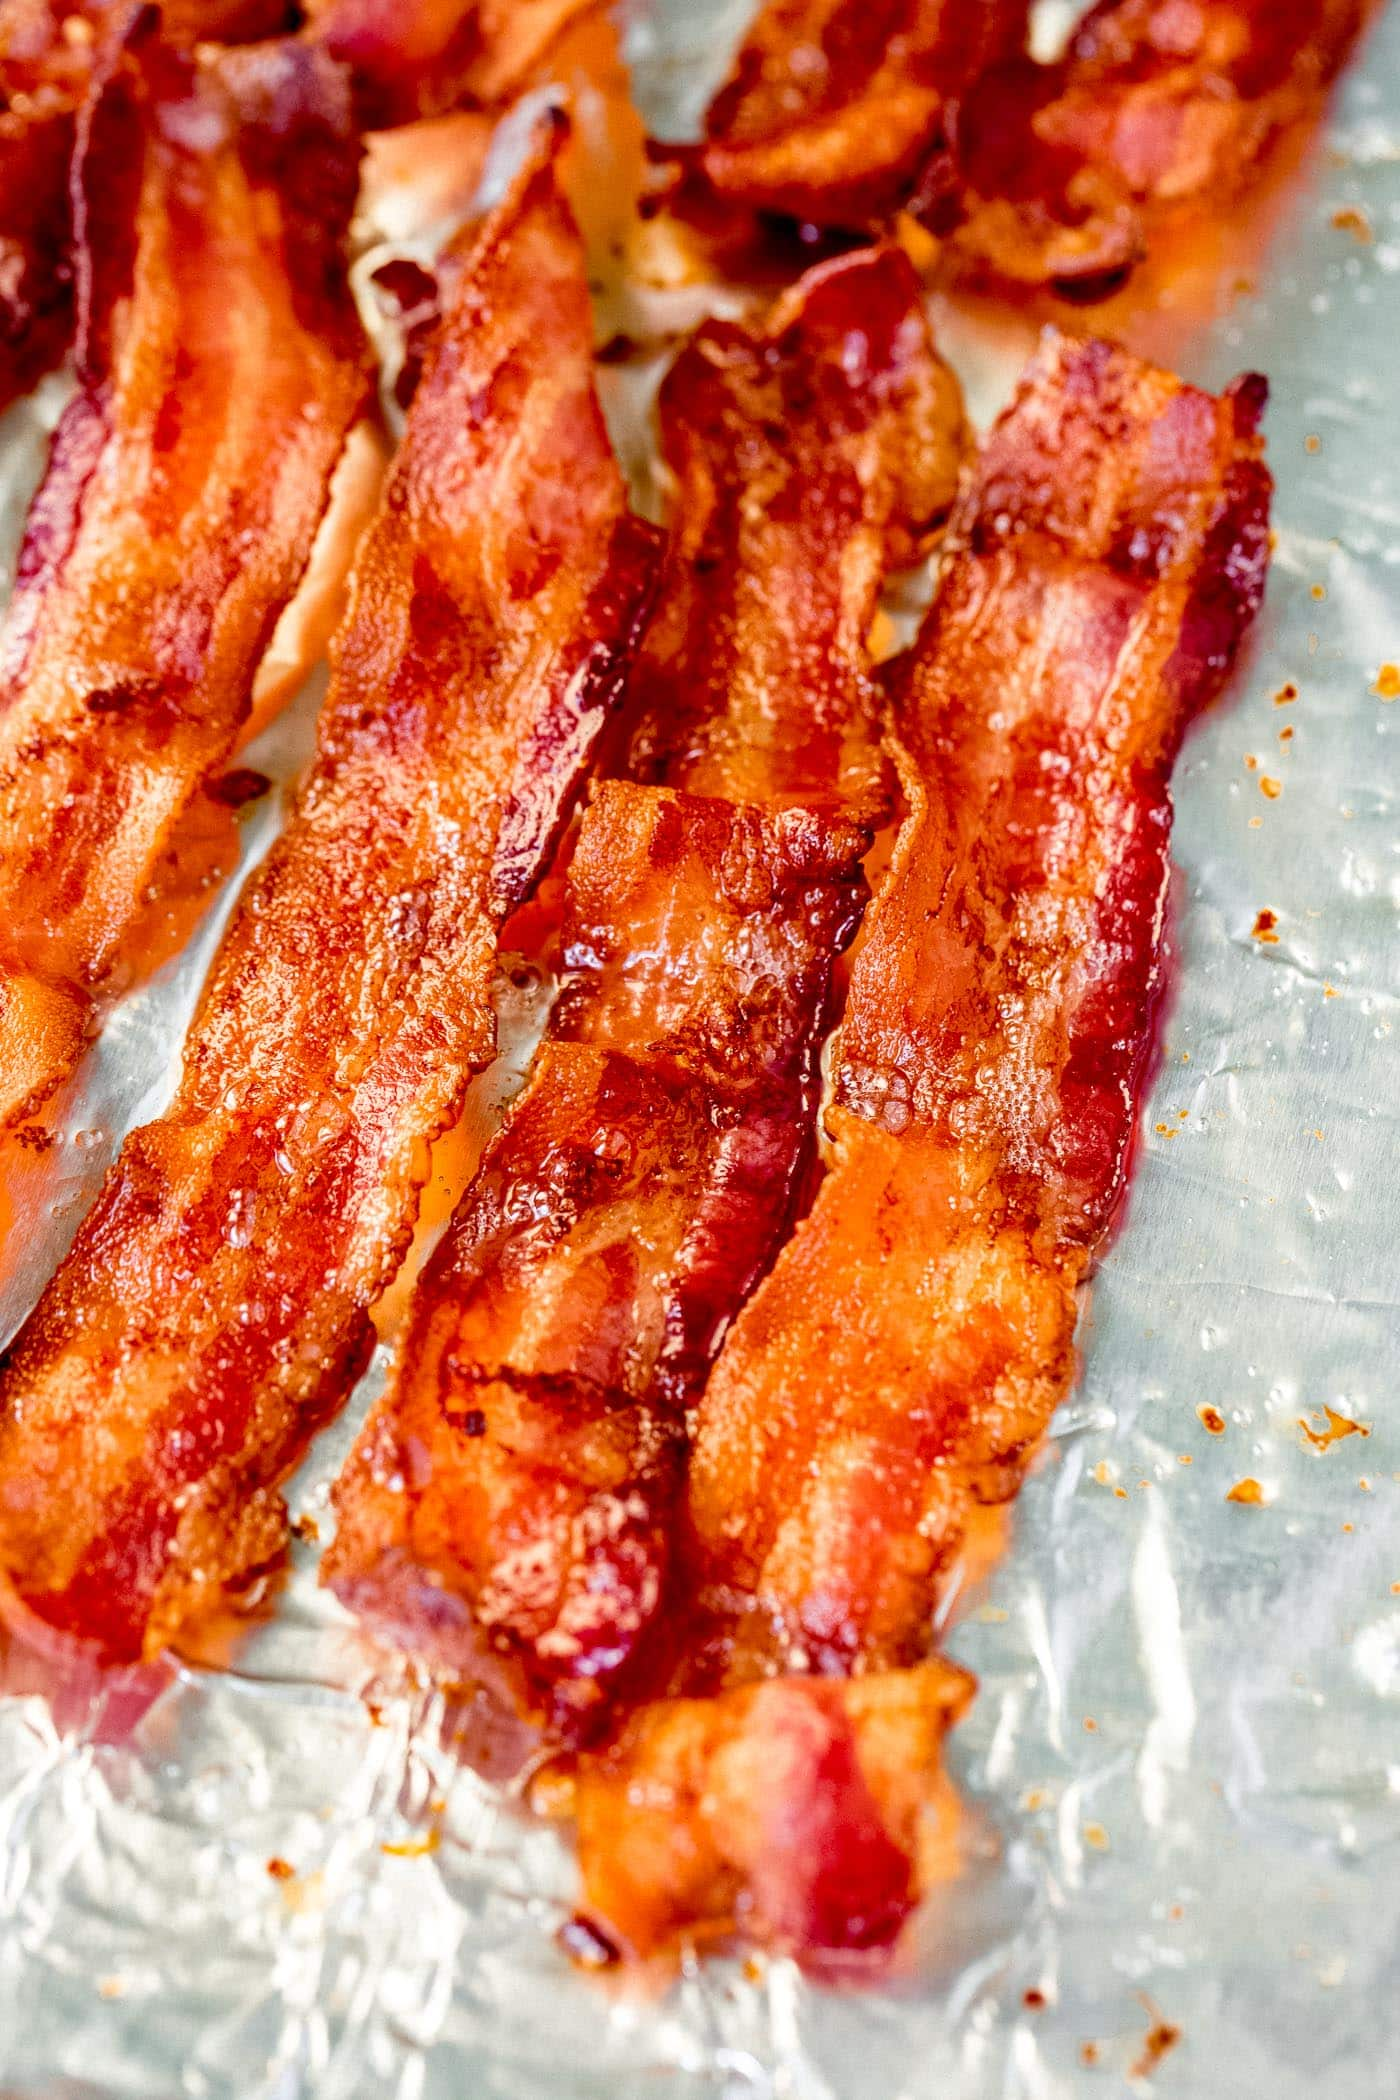 Four slices of perfectly crisp bacon.